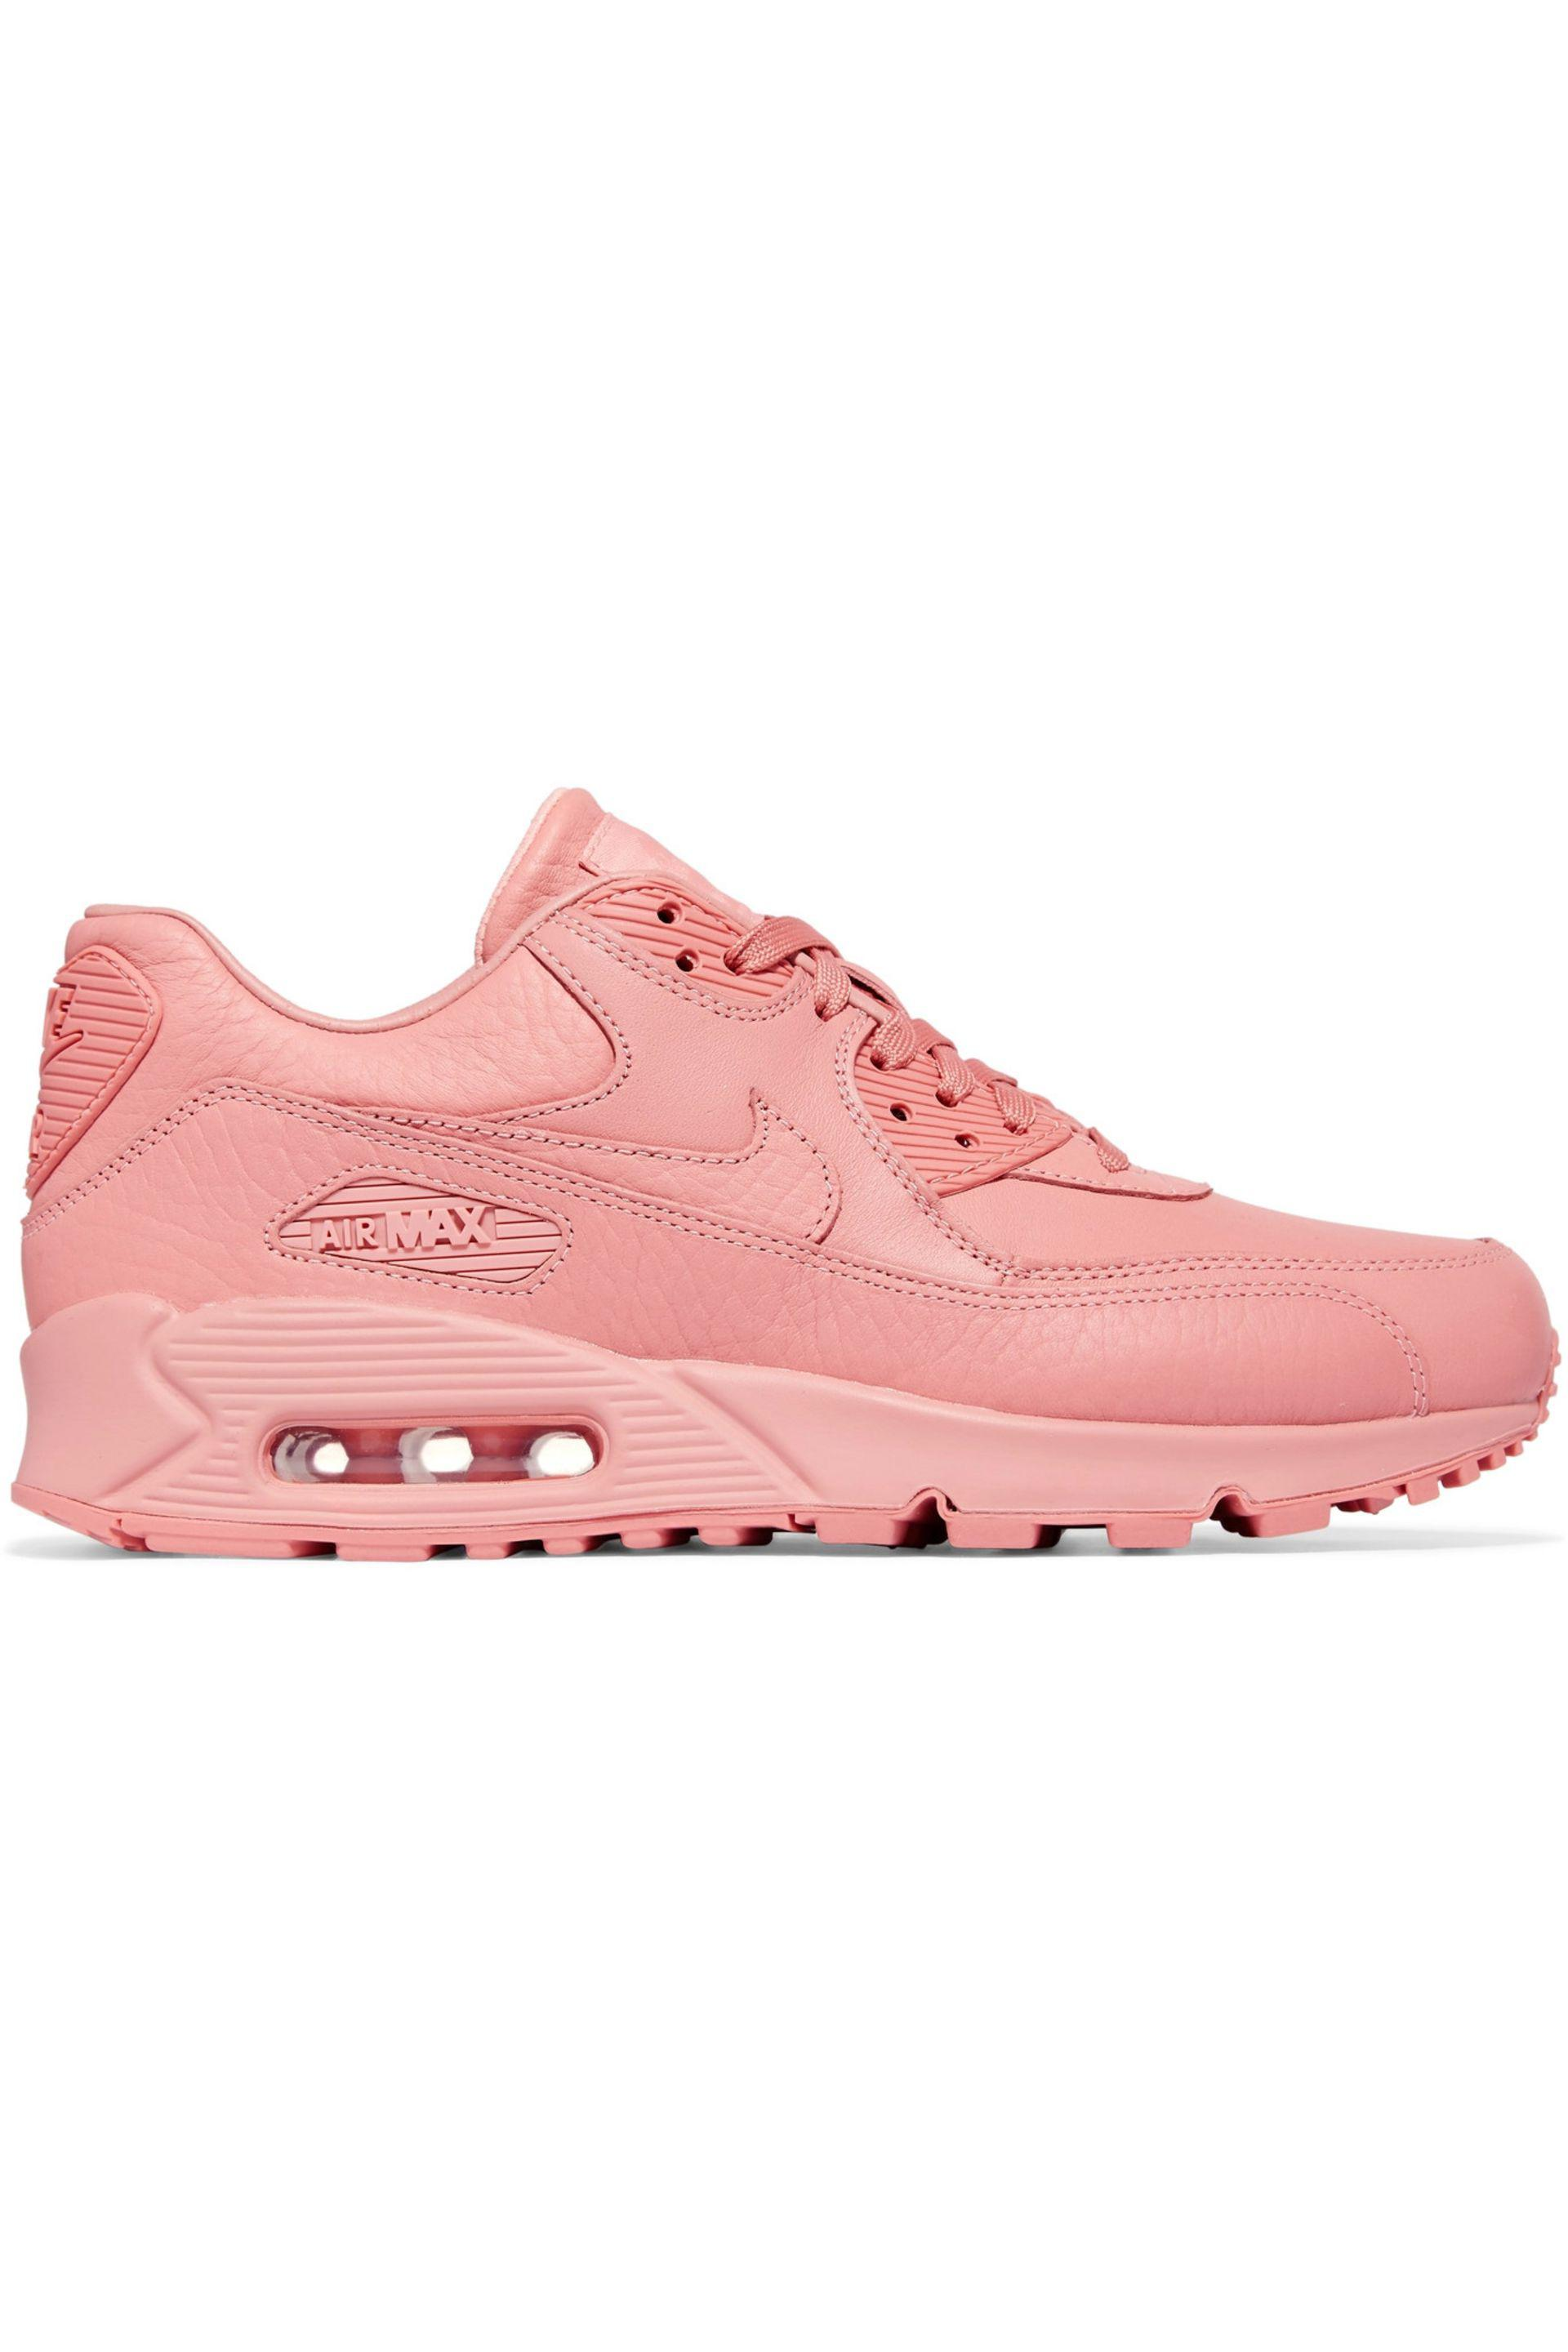 air max old rose